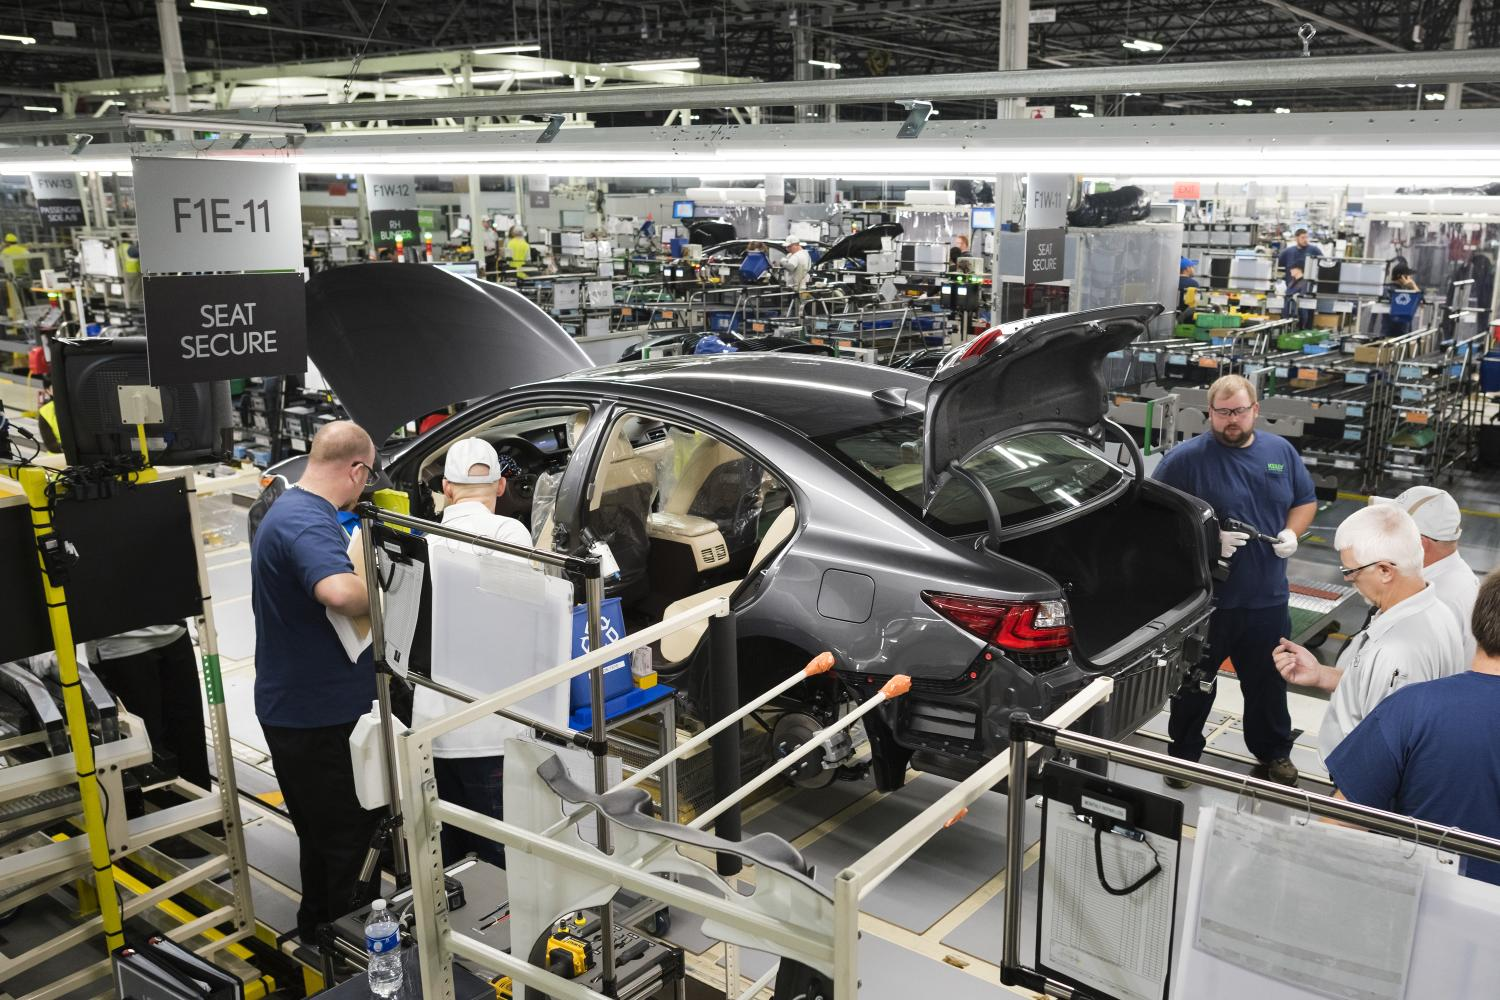 munity Partners further Sponsorships additionally Search further Elkhart General Healthcare System 85345928 in addition The First Lexus Ever Made In The Us Rolled Off The Production Line In Kentucky Video 101161. on toyota motor manufacturing kentucky logo